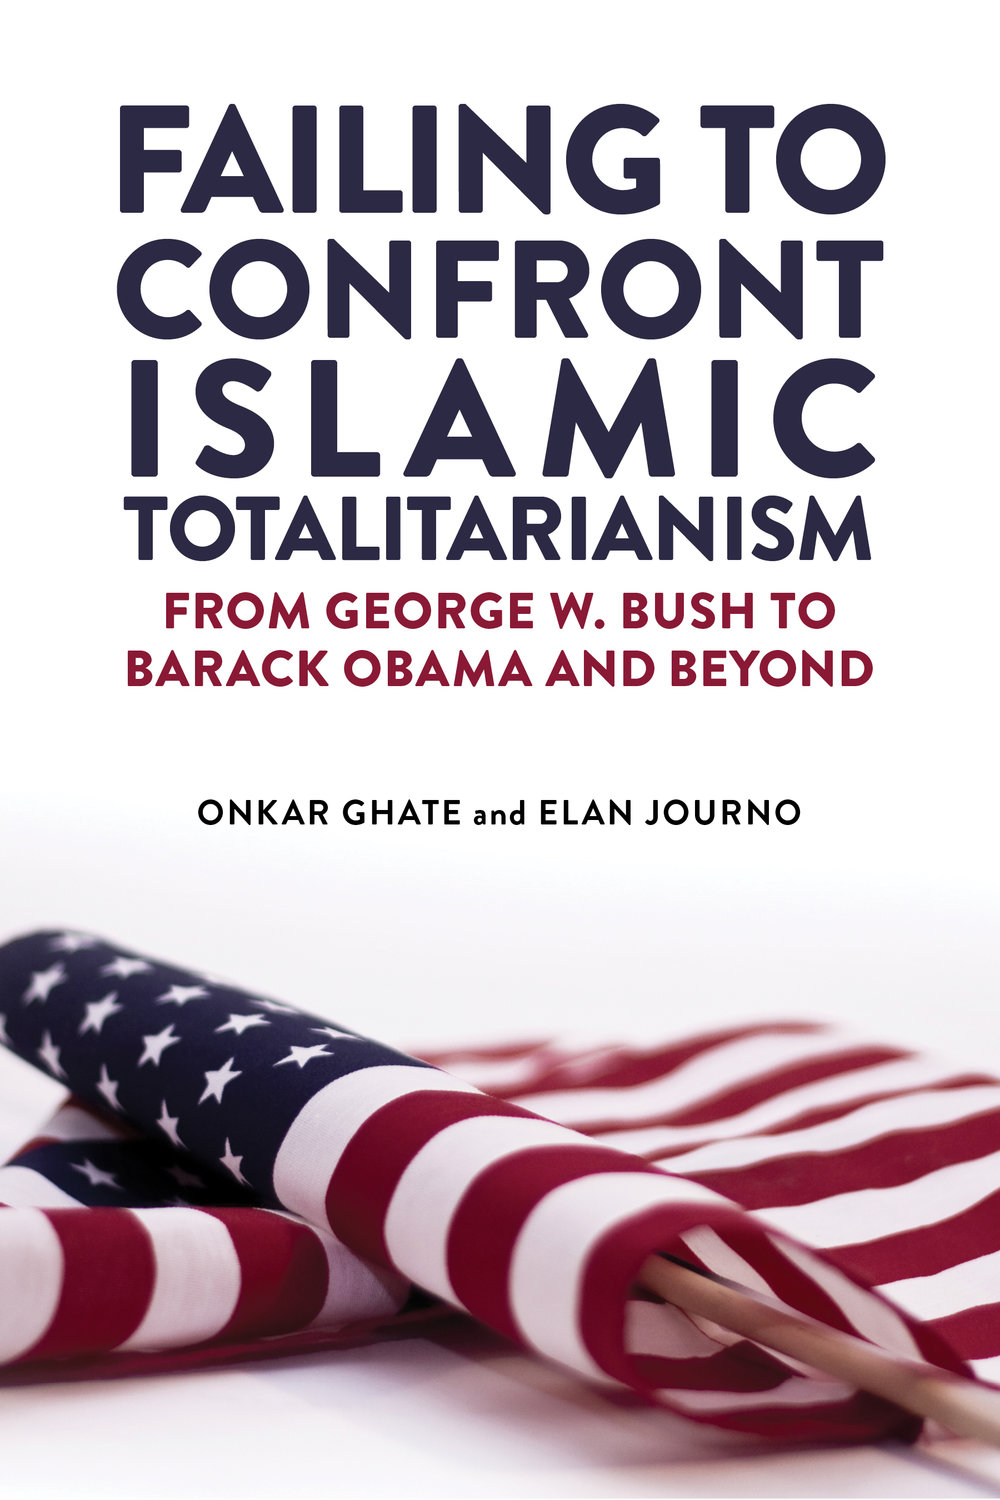 Failing_to_Confront_Islamic_Totalitarianism_FrontCover_for_eBook.jpg